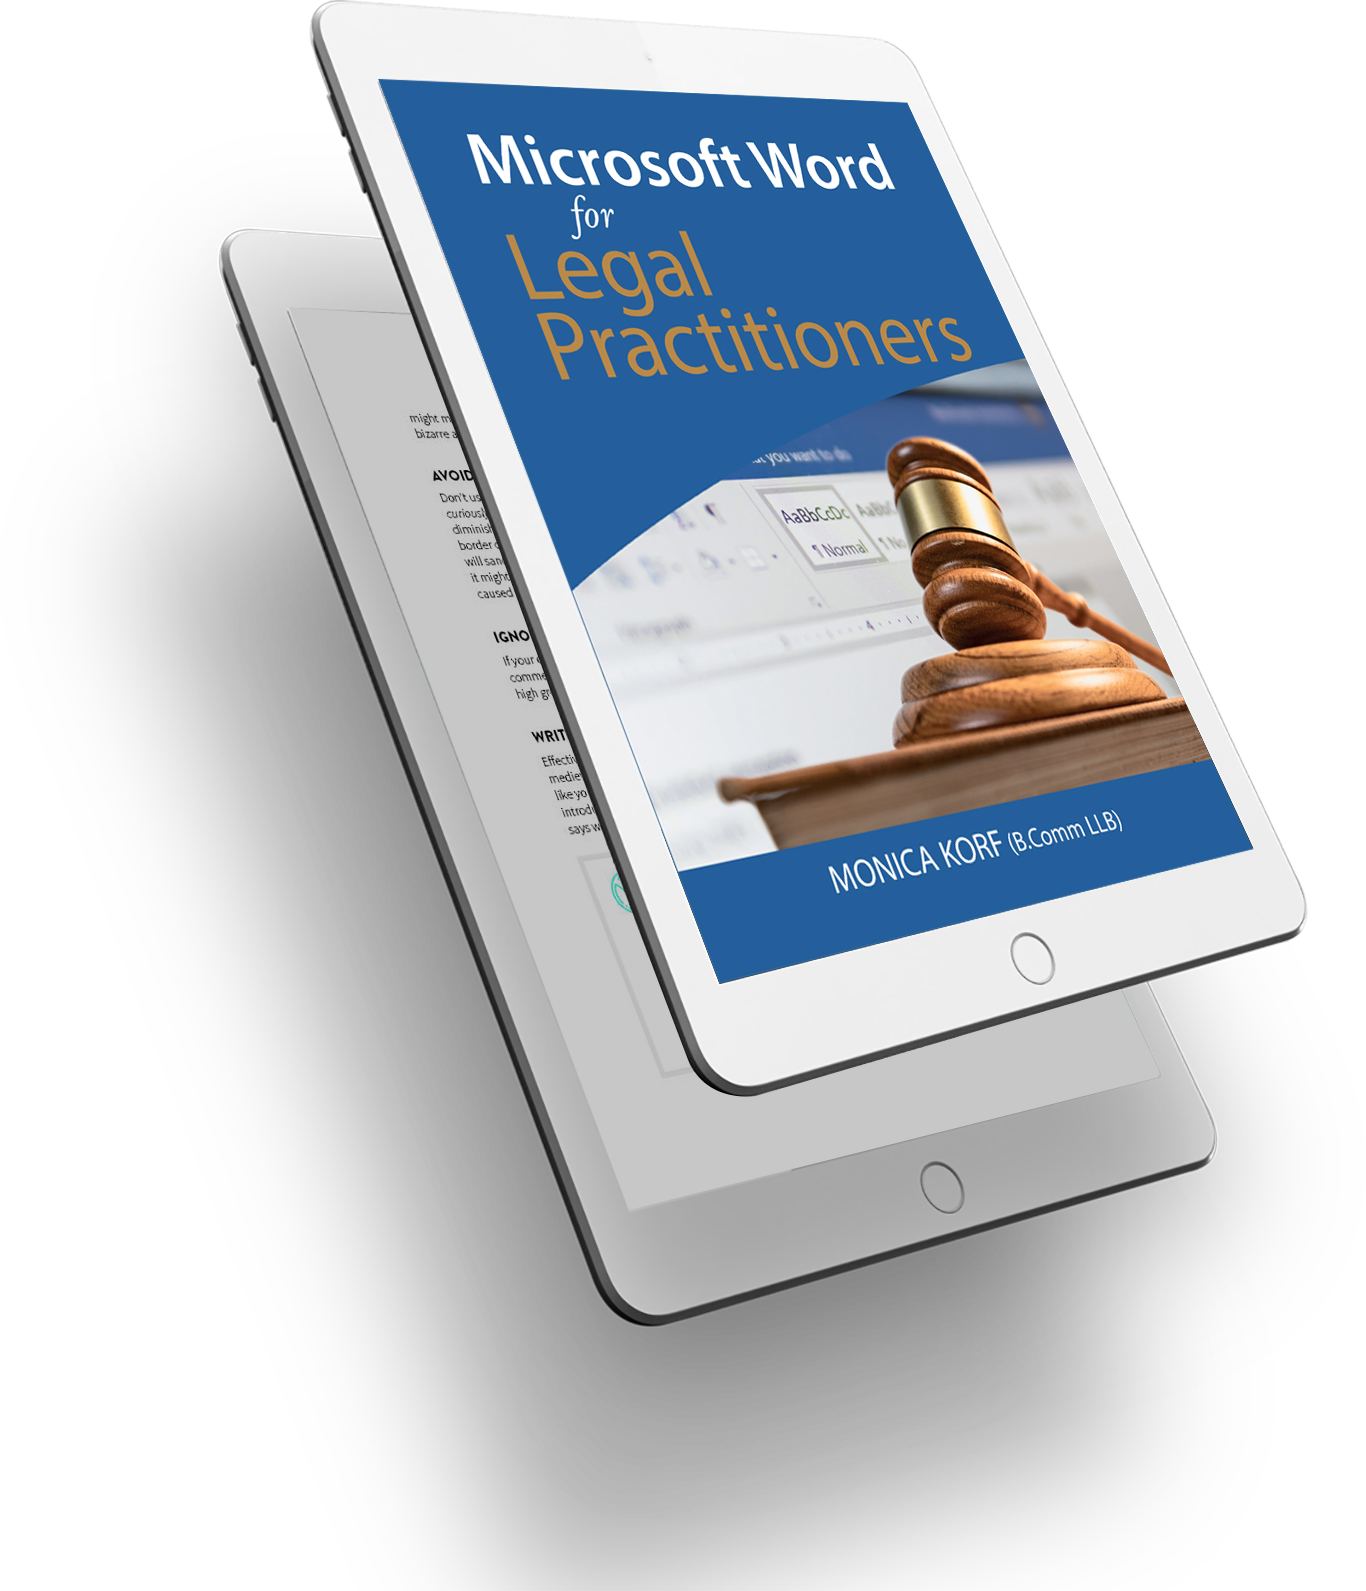 MS-WORD-Lawyers Book Cover - 3D